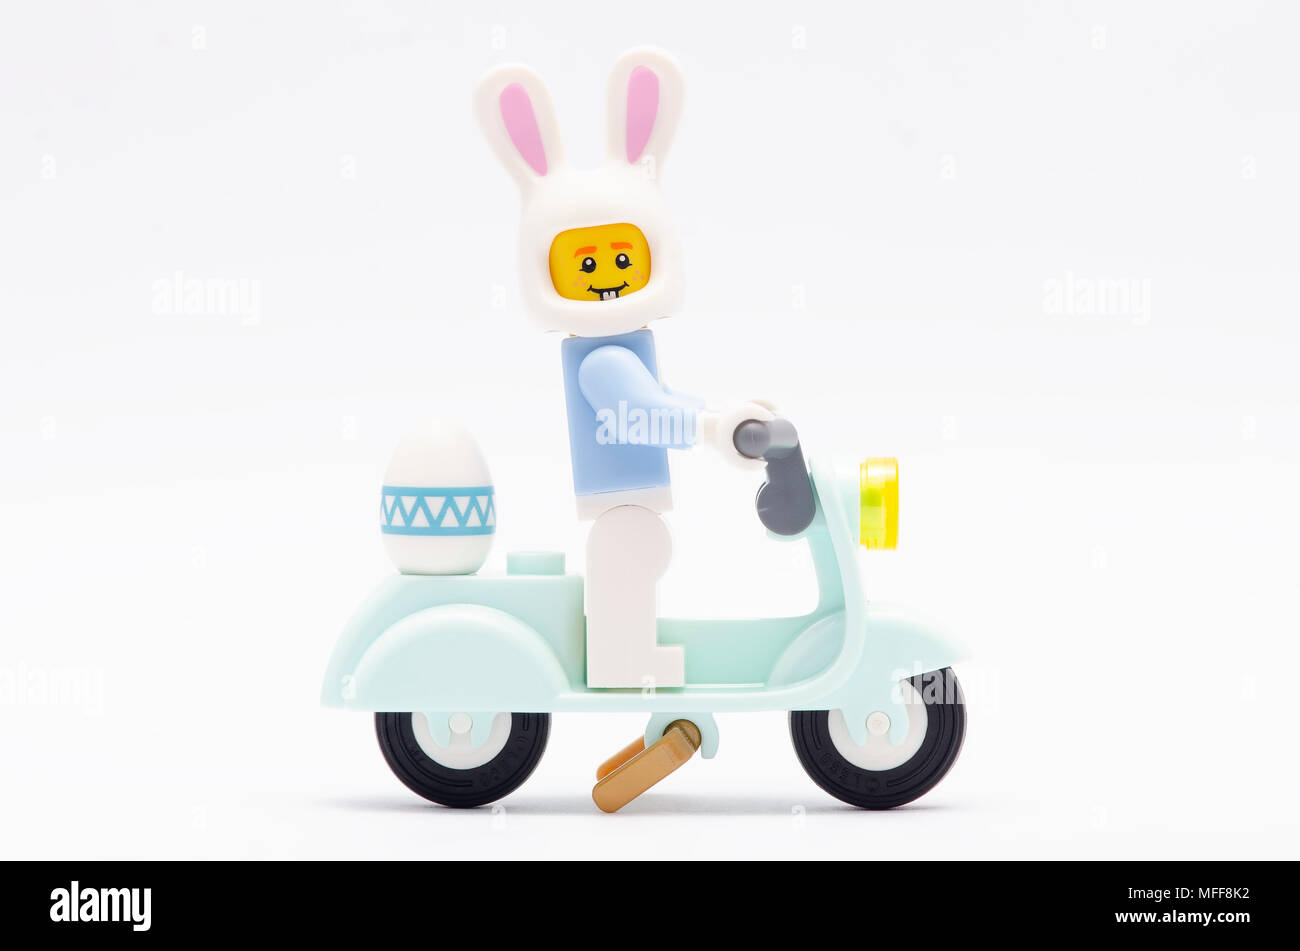 mini figure of a man wearing bunny suit riding motorcycle celebrating easter day. Lego minifigures are manufactured by The Lego Group. - Stock Image